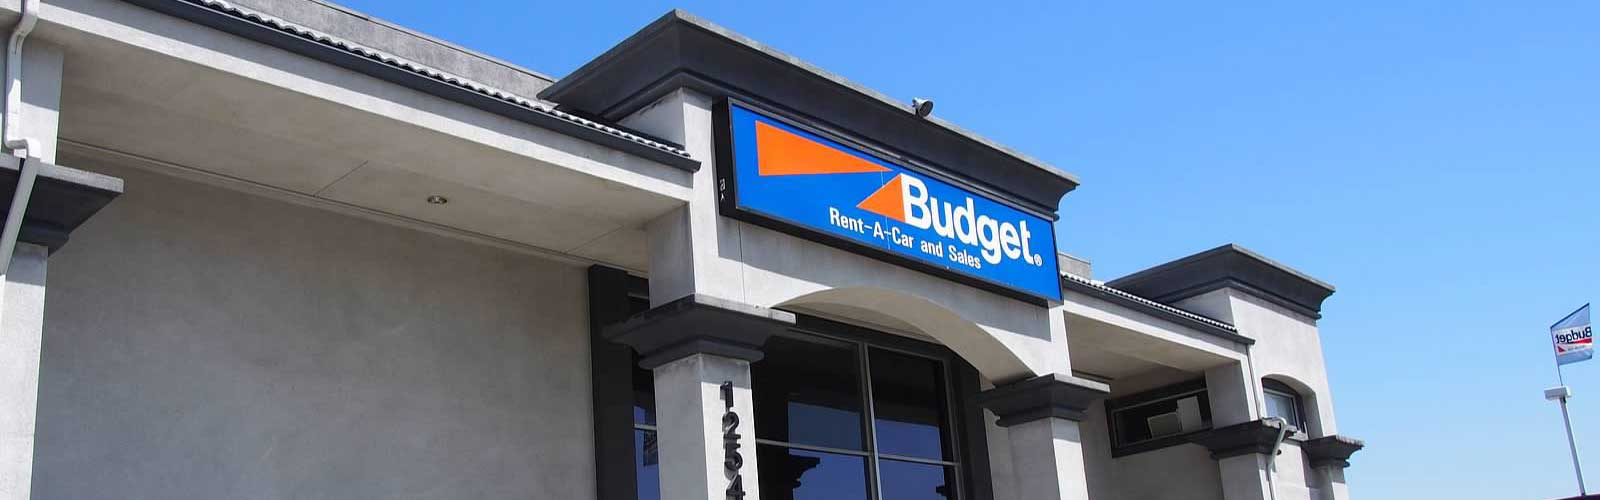 Budget Car Sales Dealership, Norwalk, CA Photo